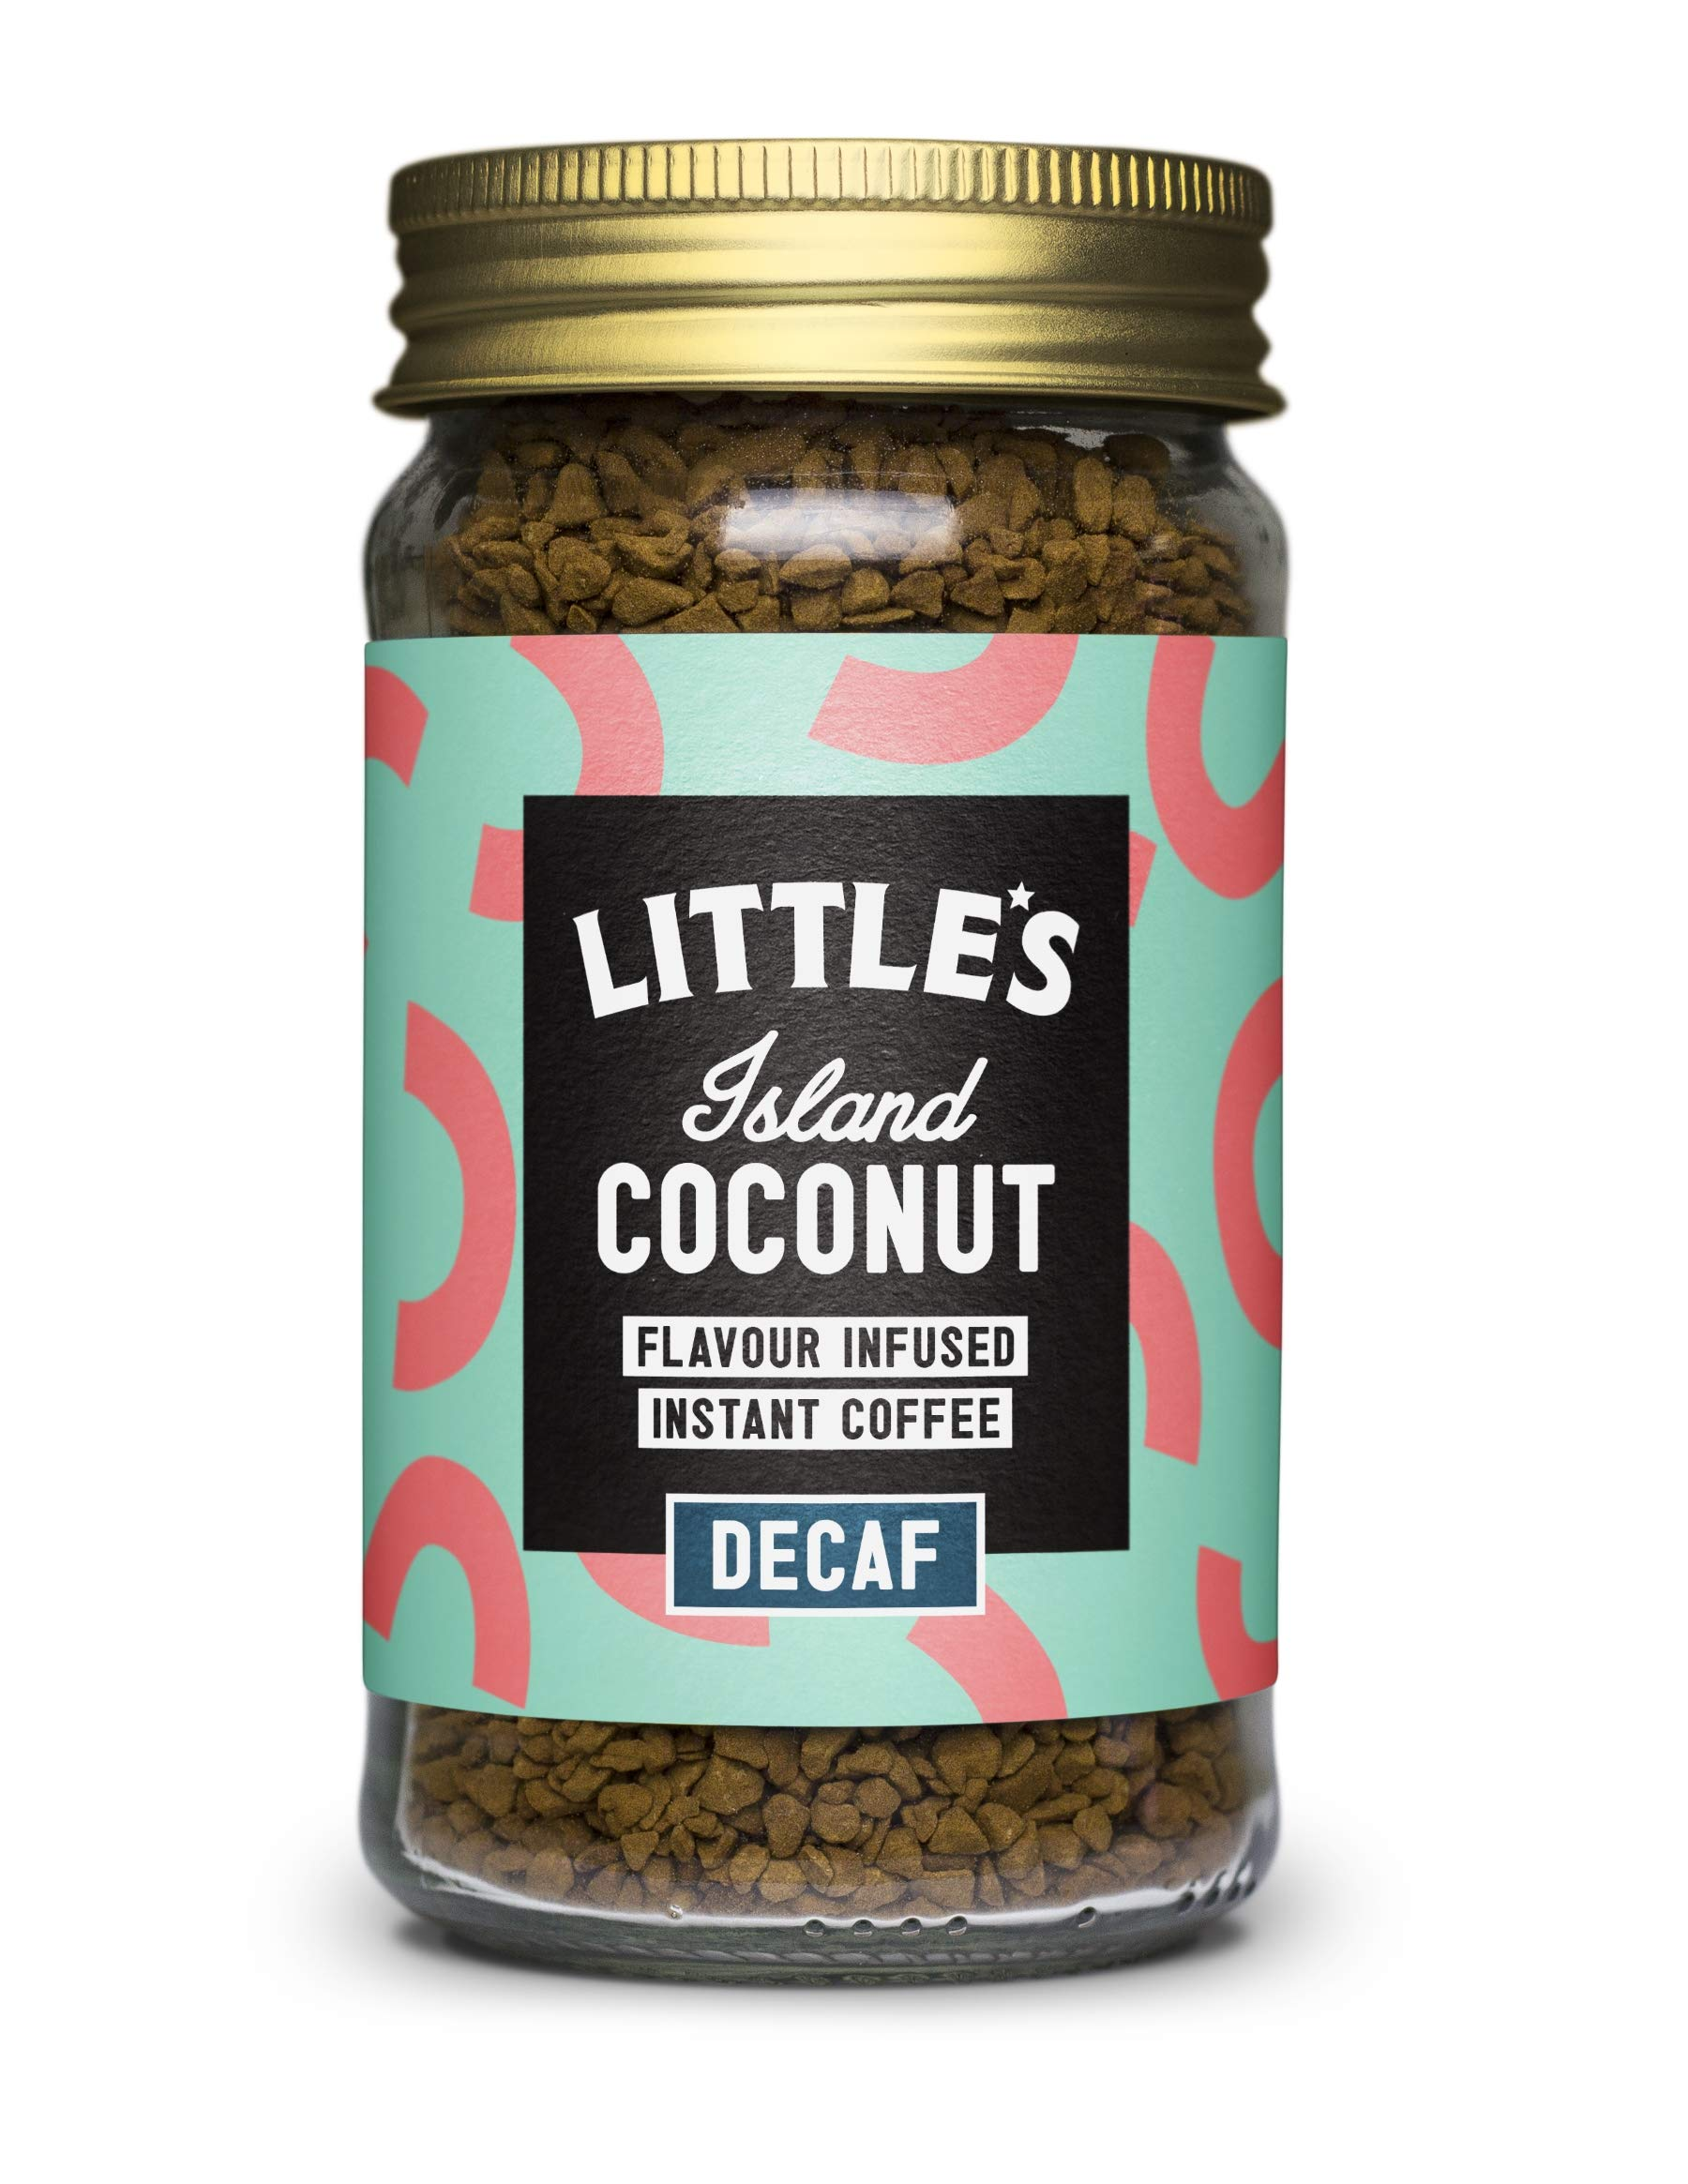 Little's Island Coconut Decaf Instant Coffee 50g x 1